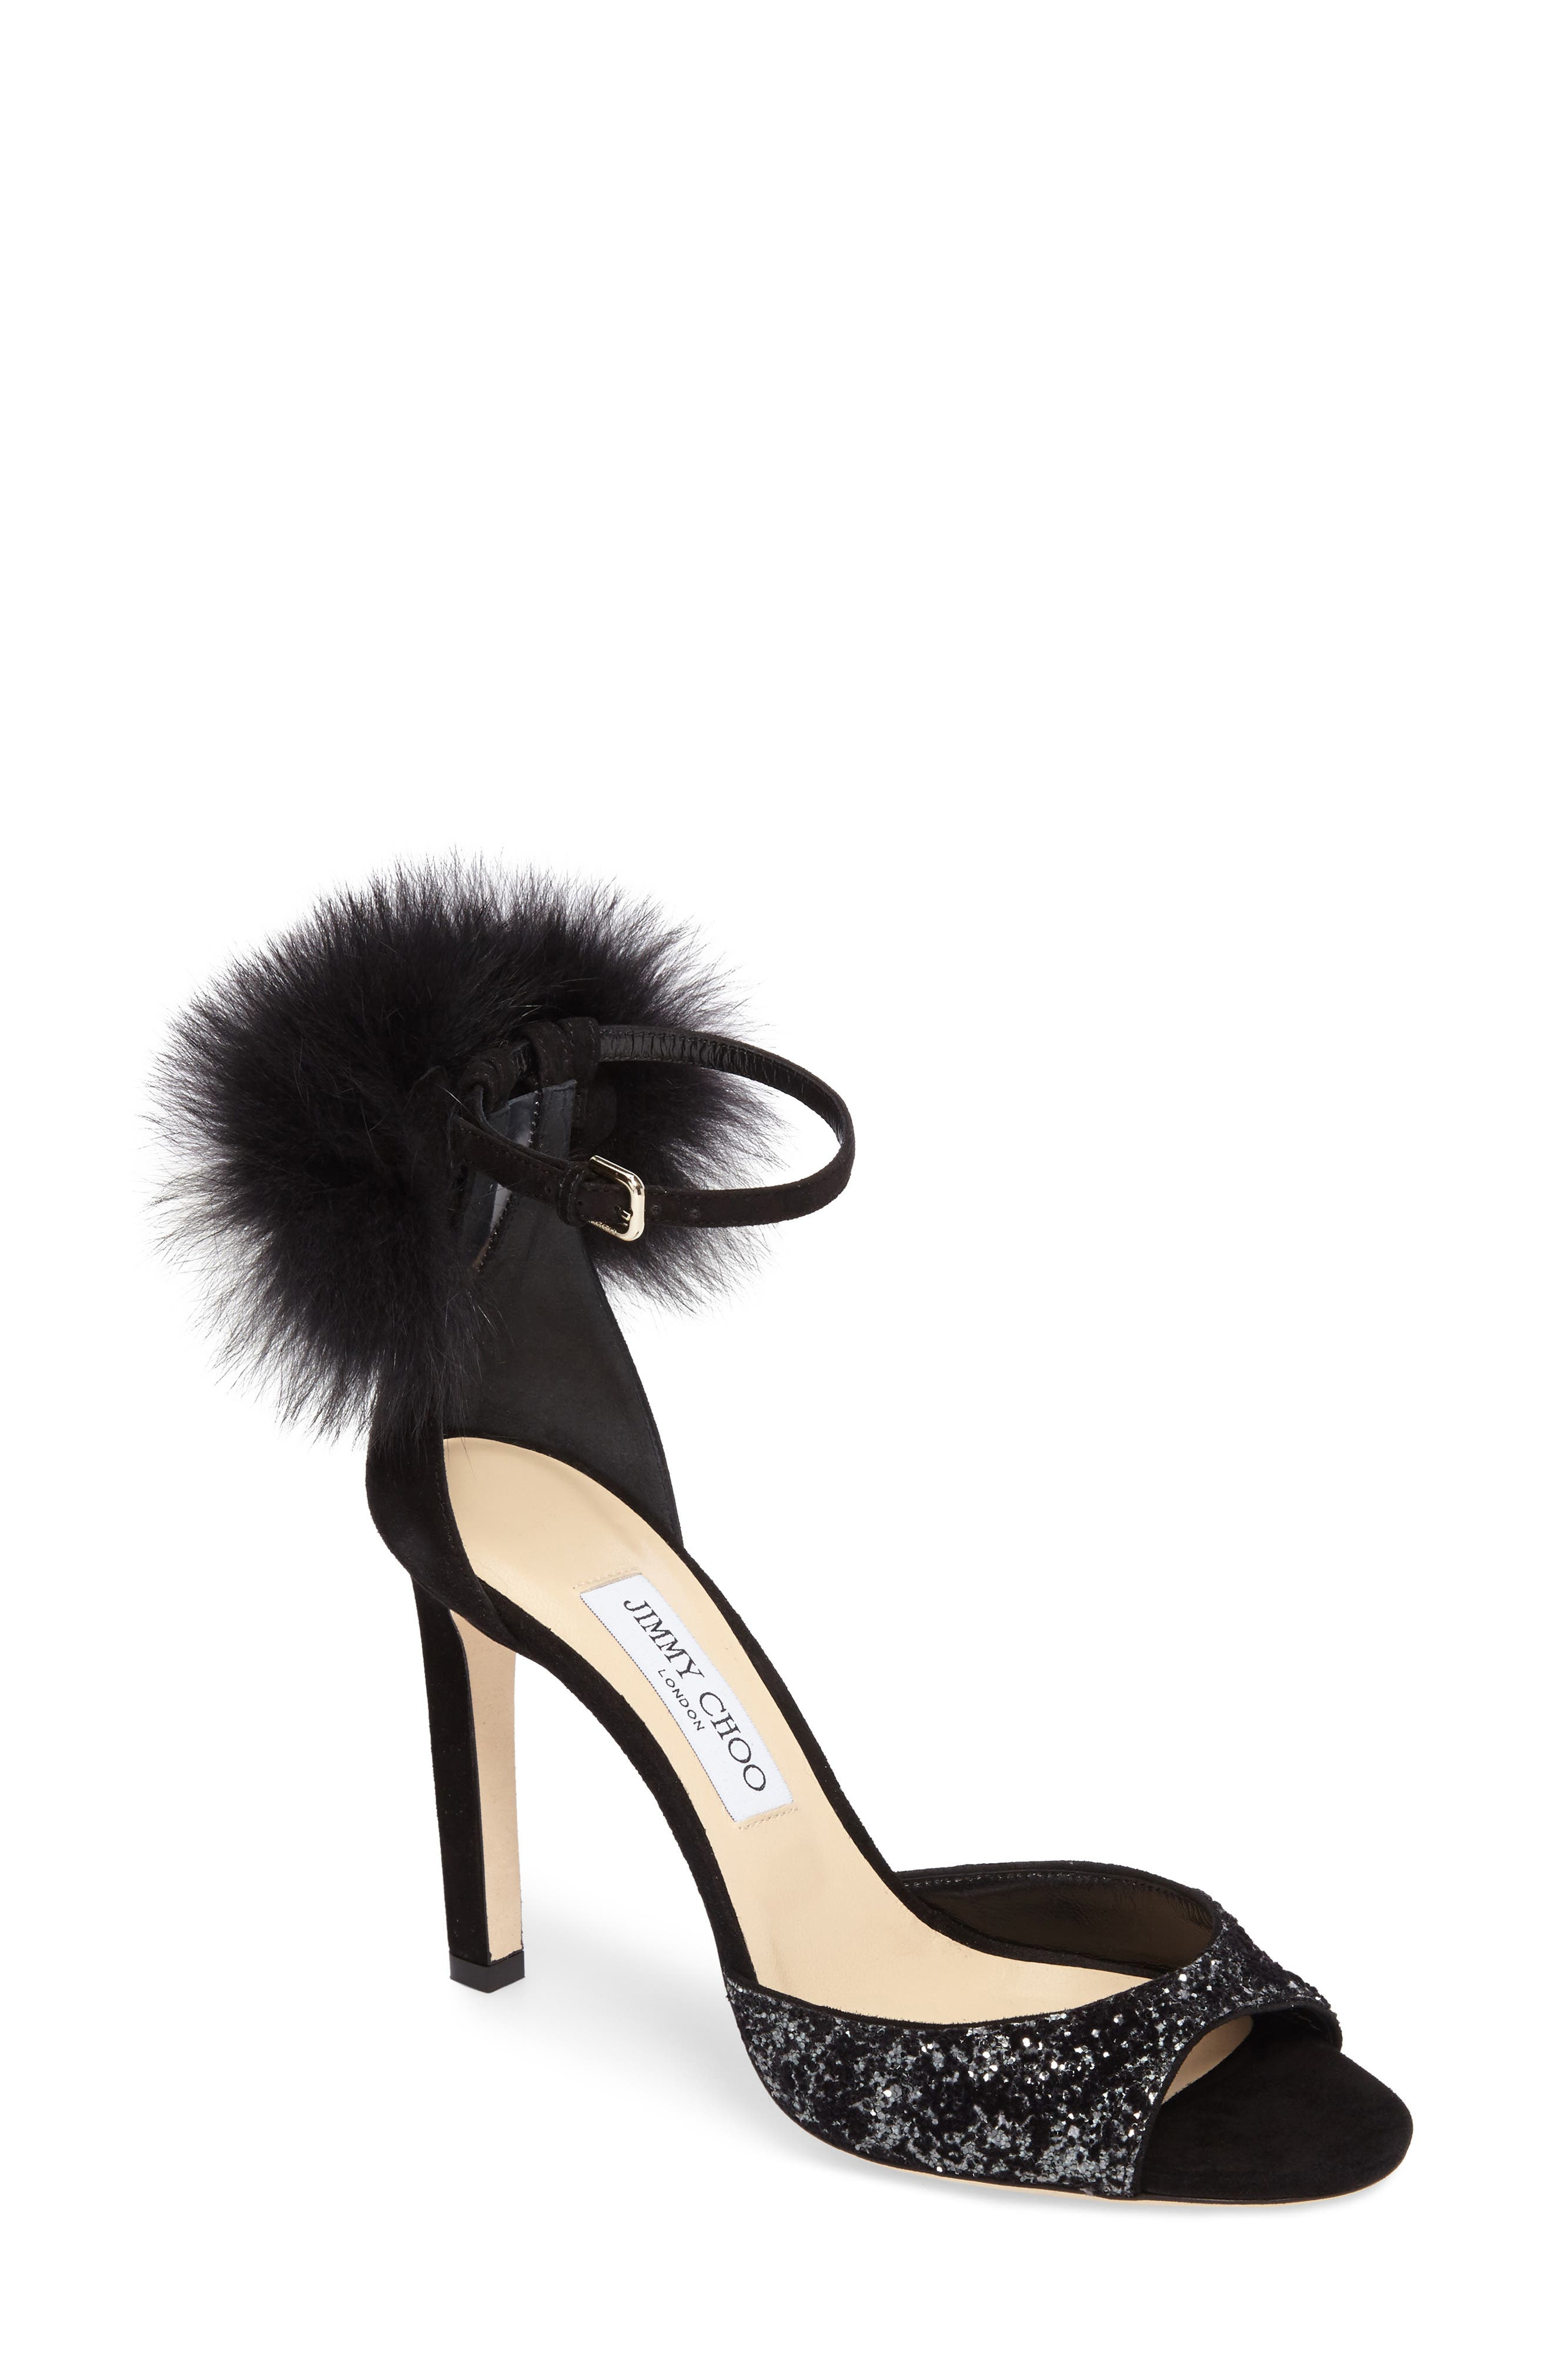 Suri Genuine Fox Fur Sandal,                         Main,                         color, Anthracite/ Black/ Black